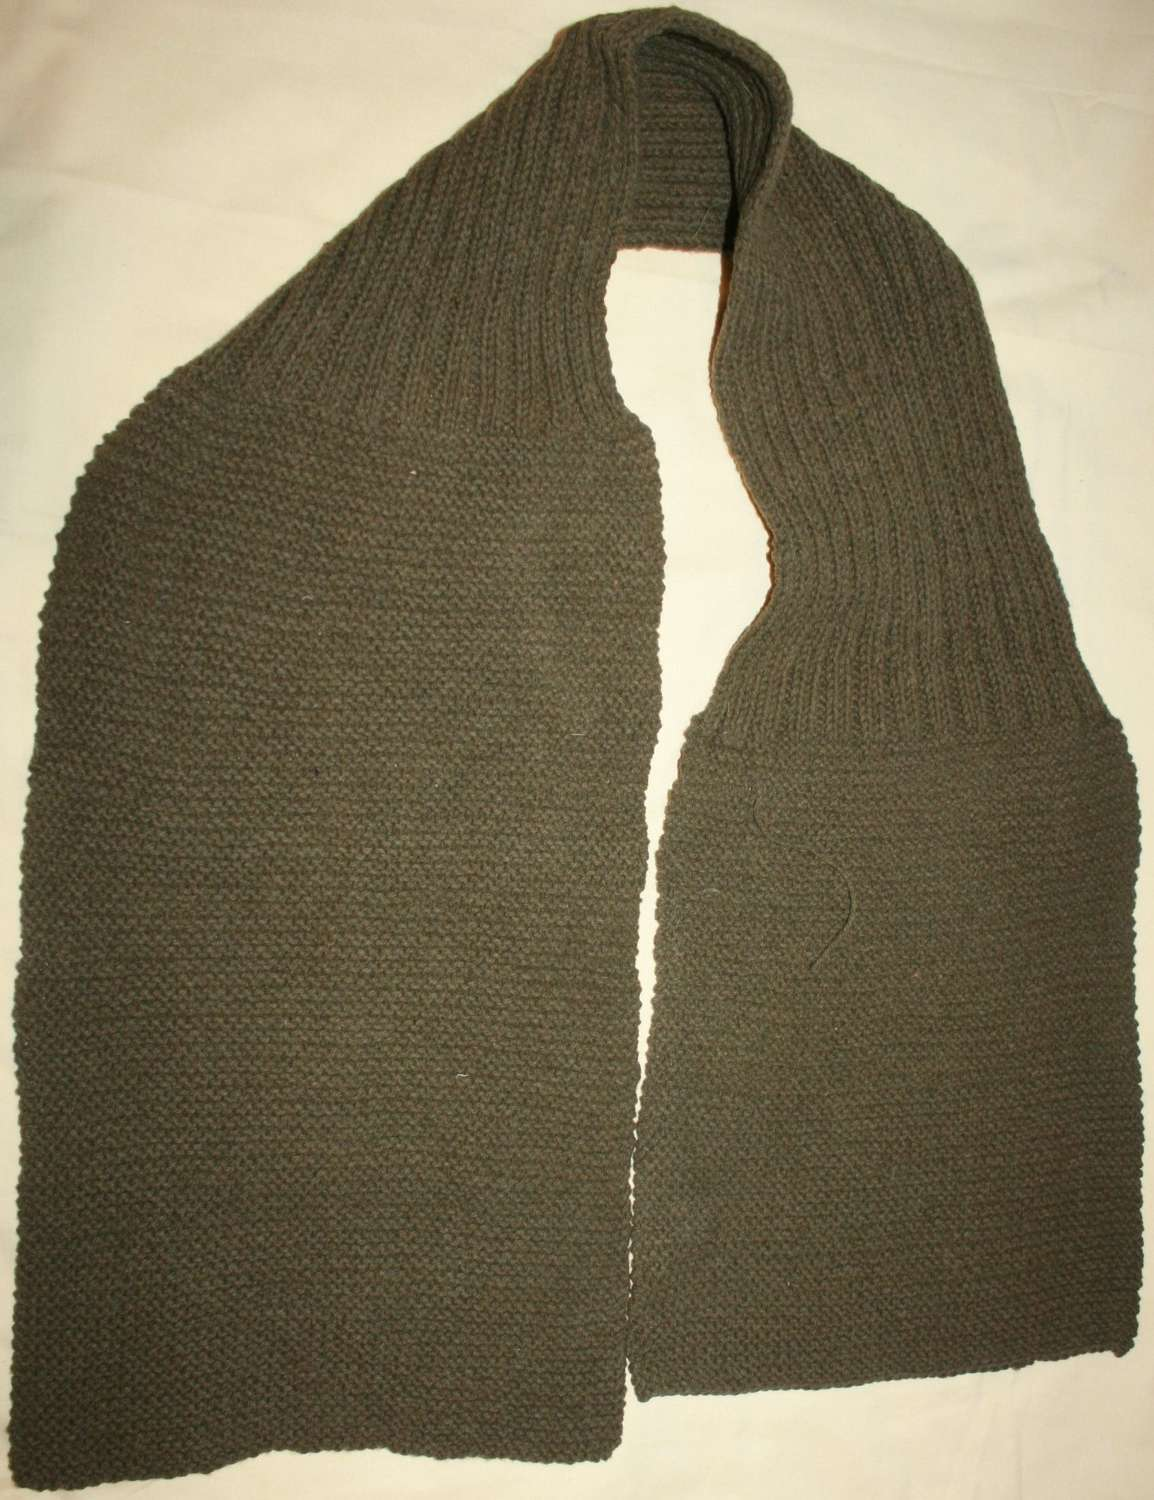 A WWI / WWII PRIVATE PURCHASE / COMFORTS SCARF